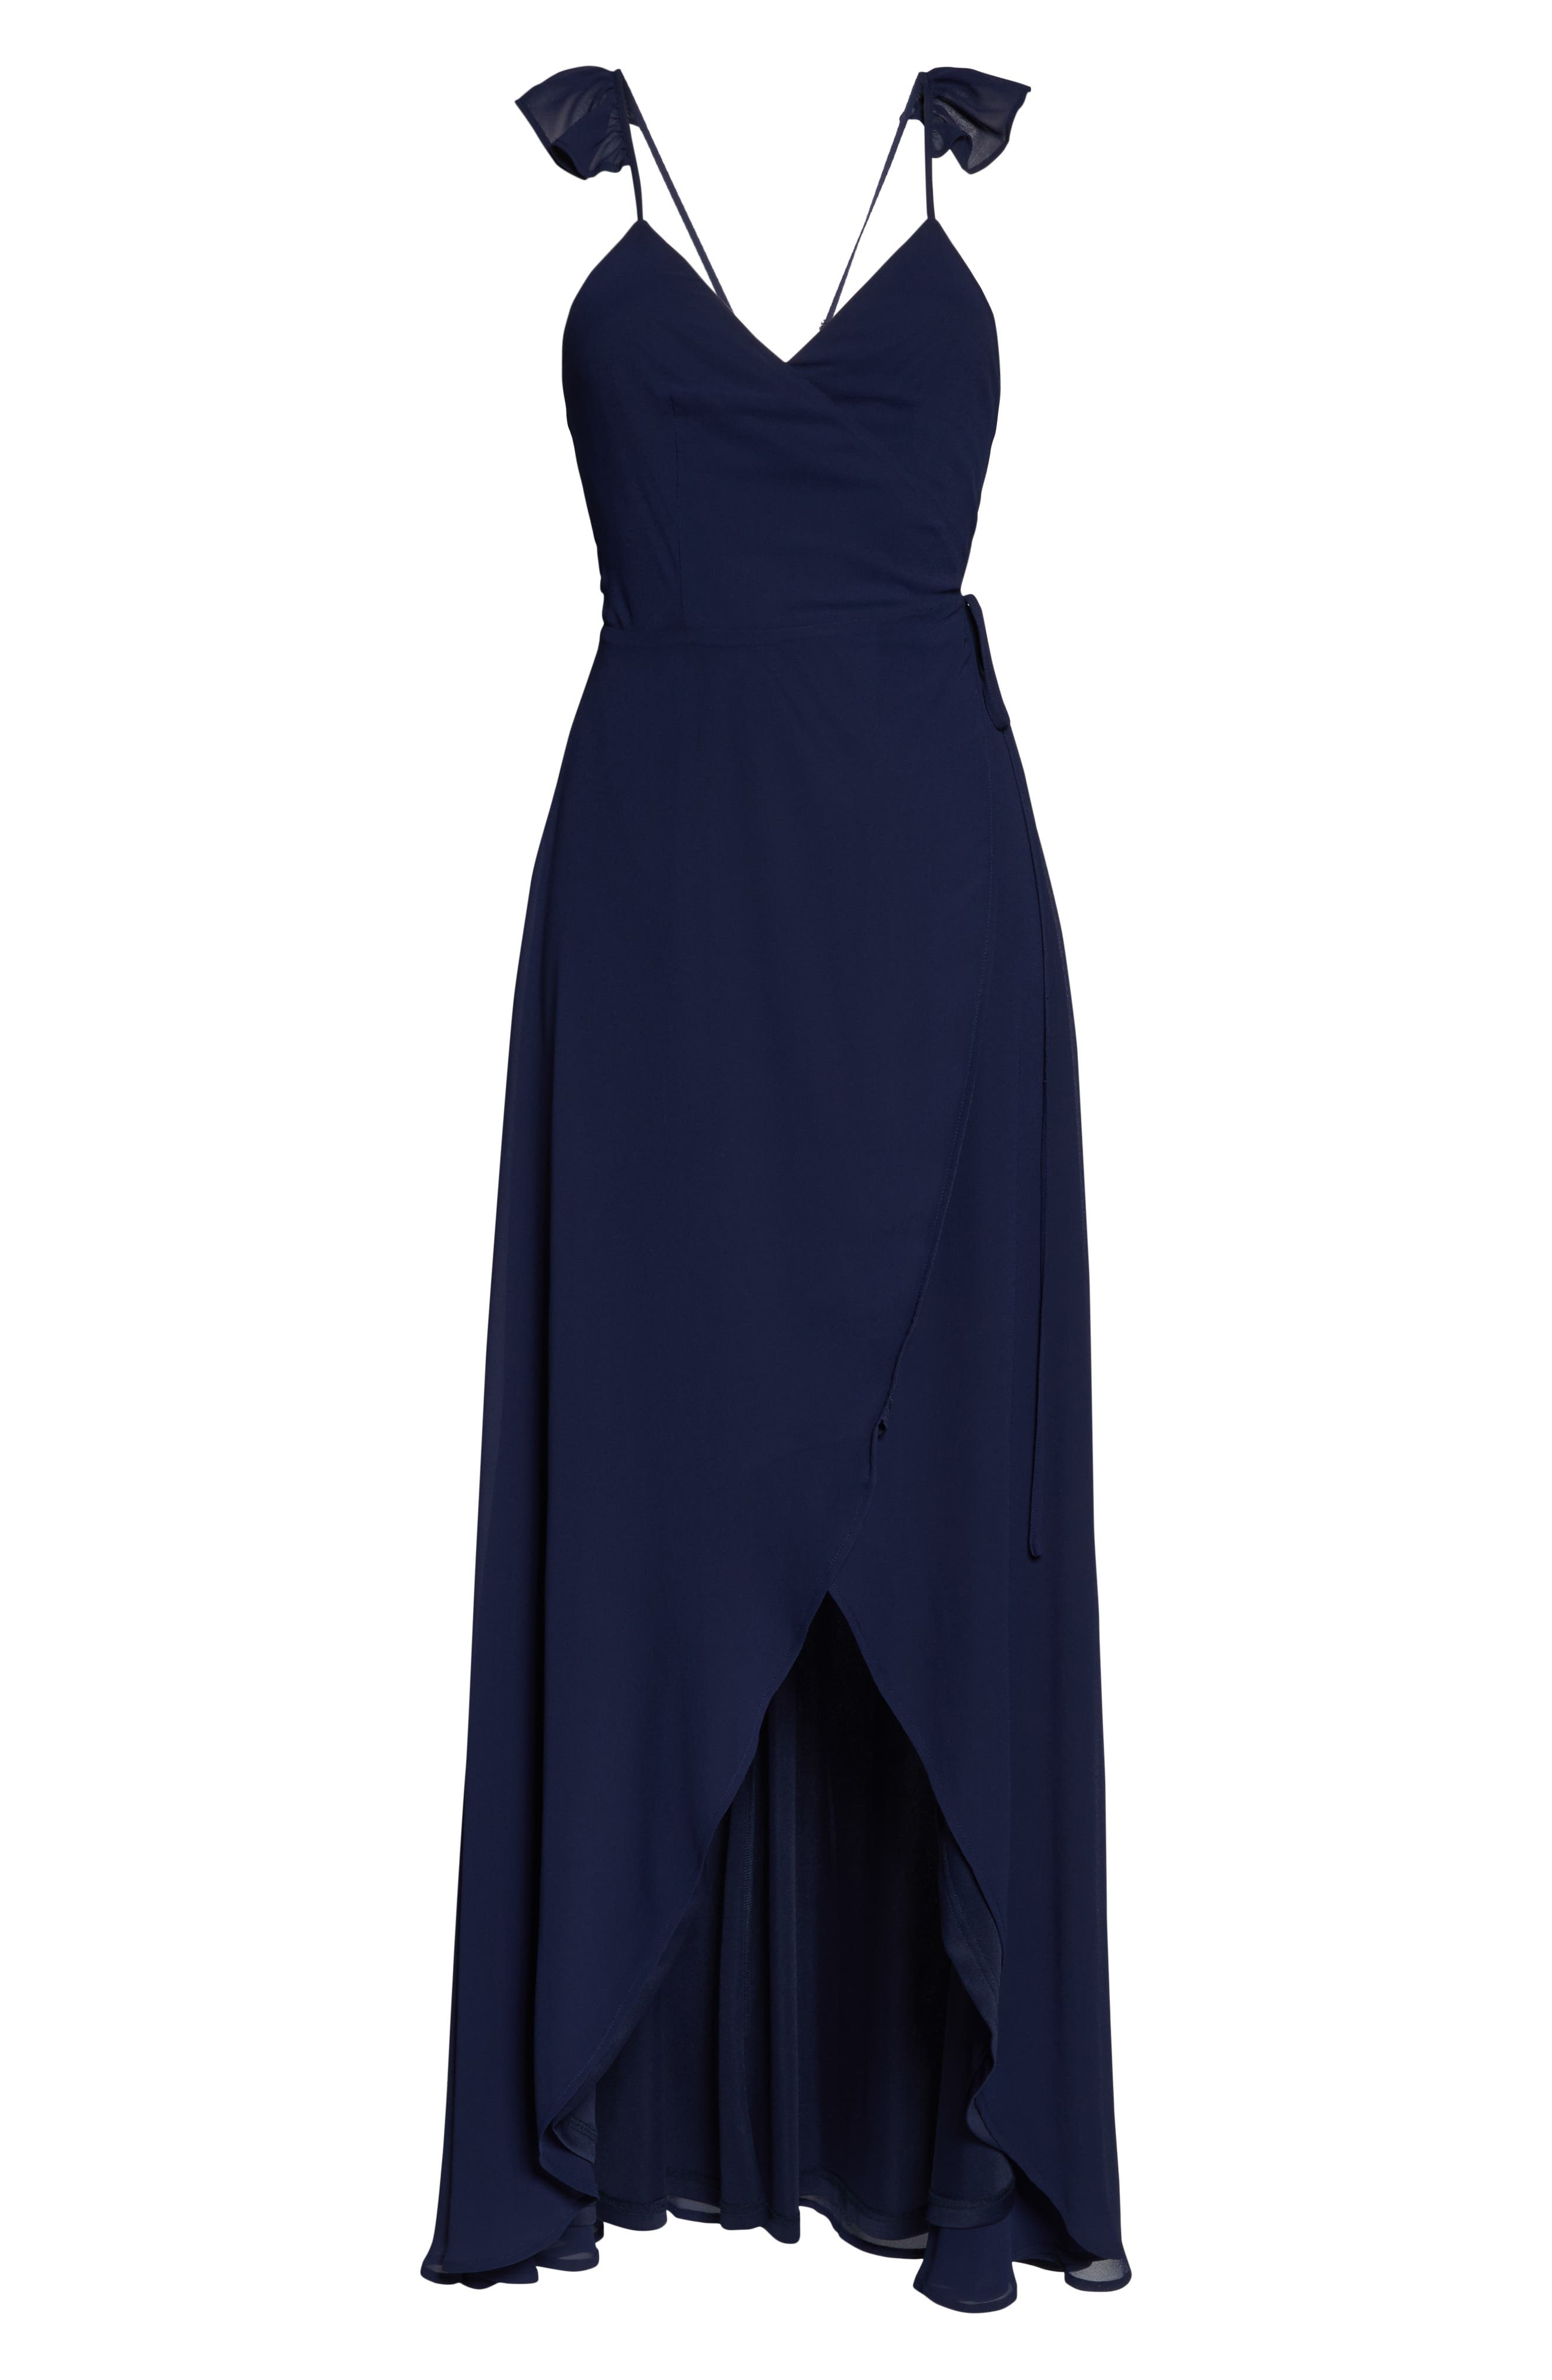 LULUS,                             Here's to Us High/Low Wrap Evening Dress,                             Alternate thumbnail 7, color,                             NAVY